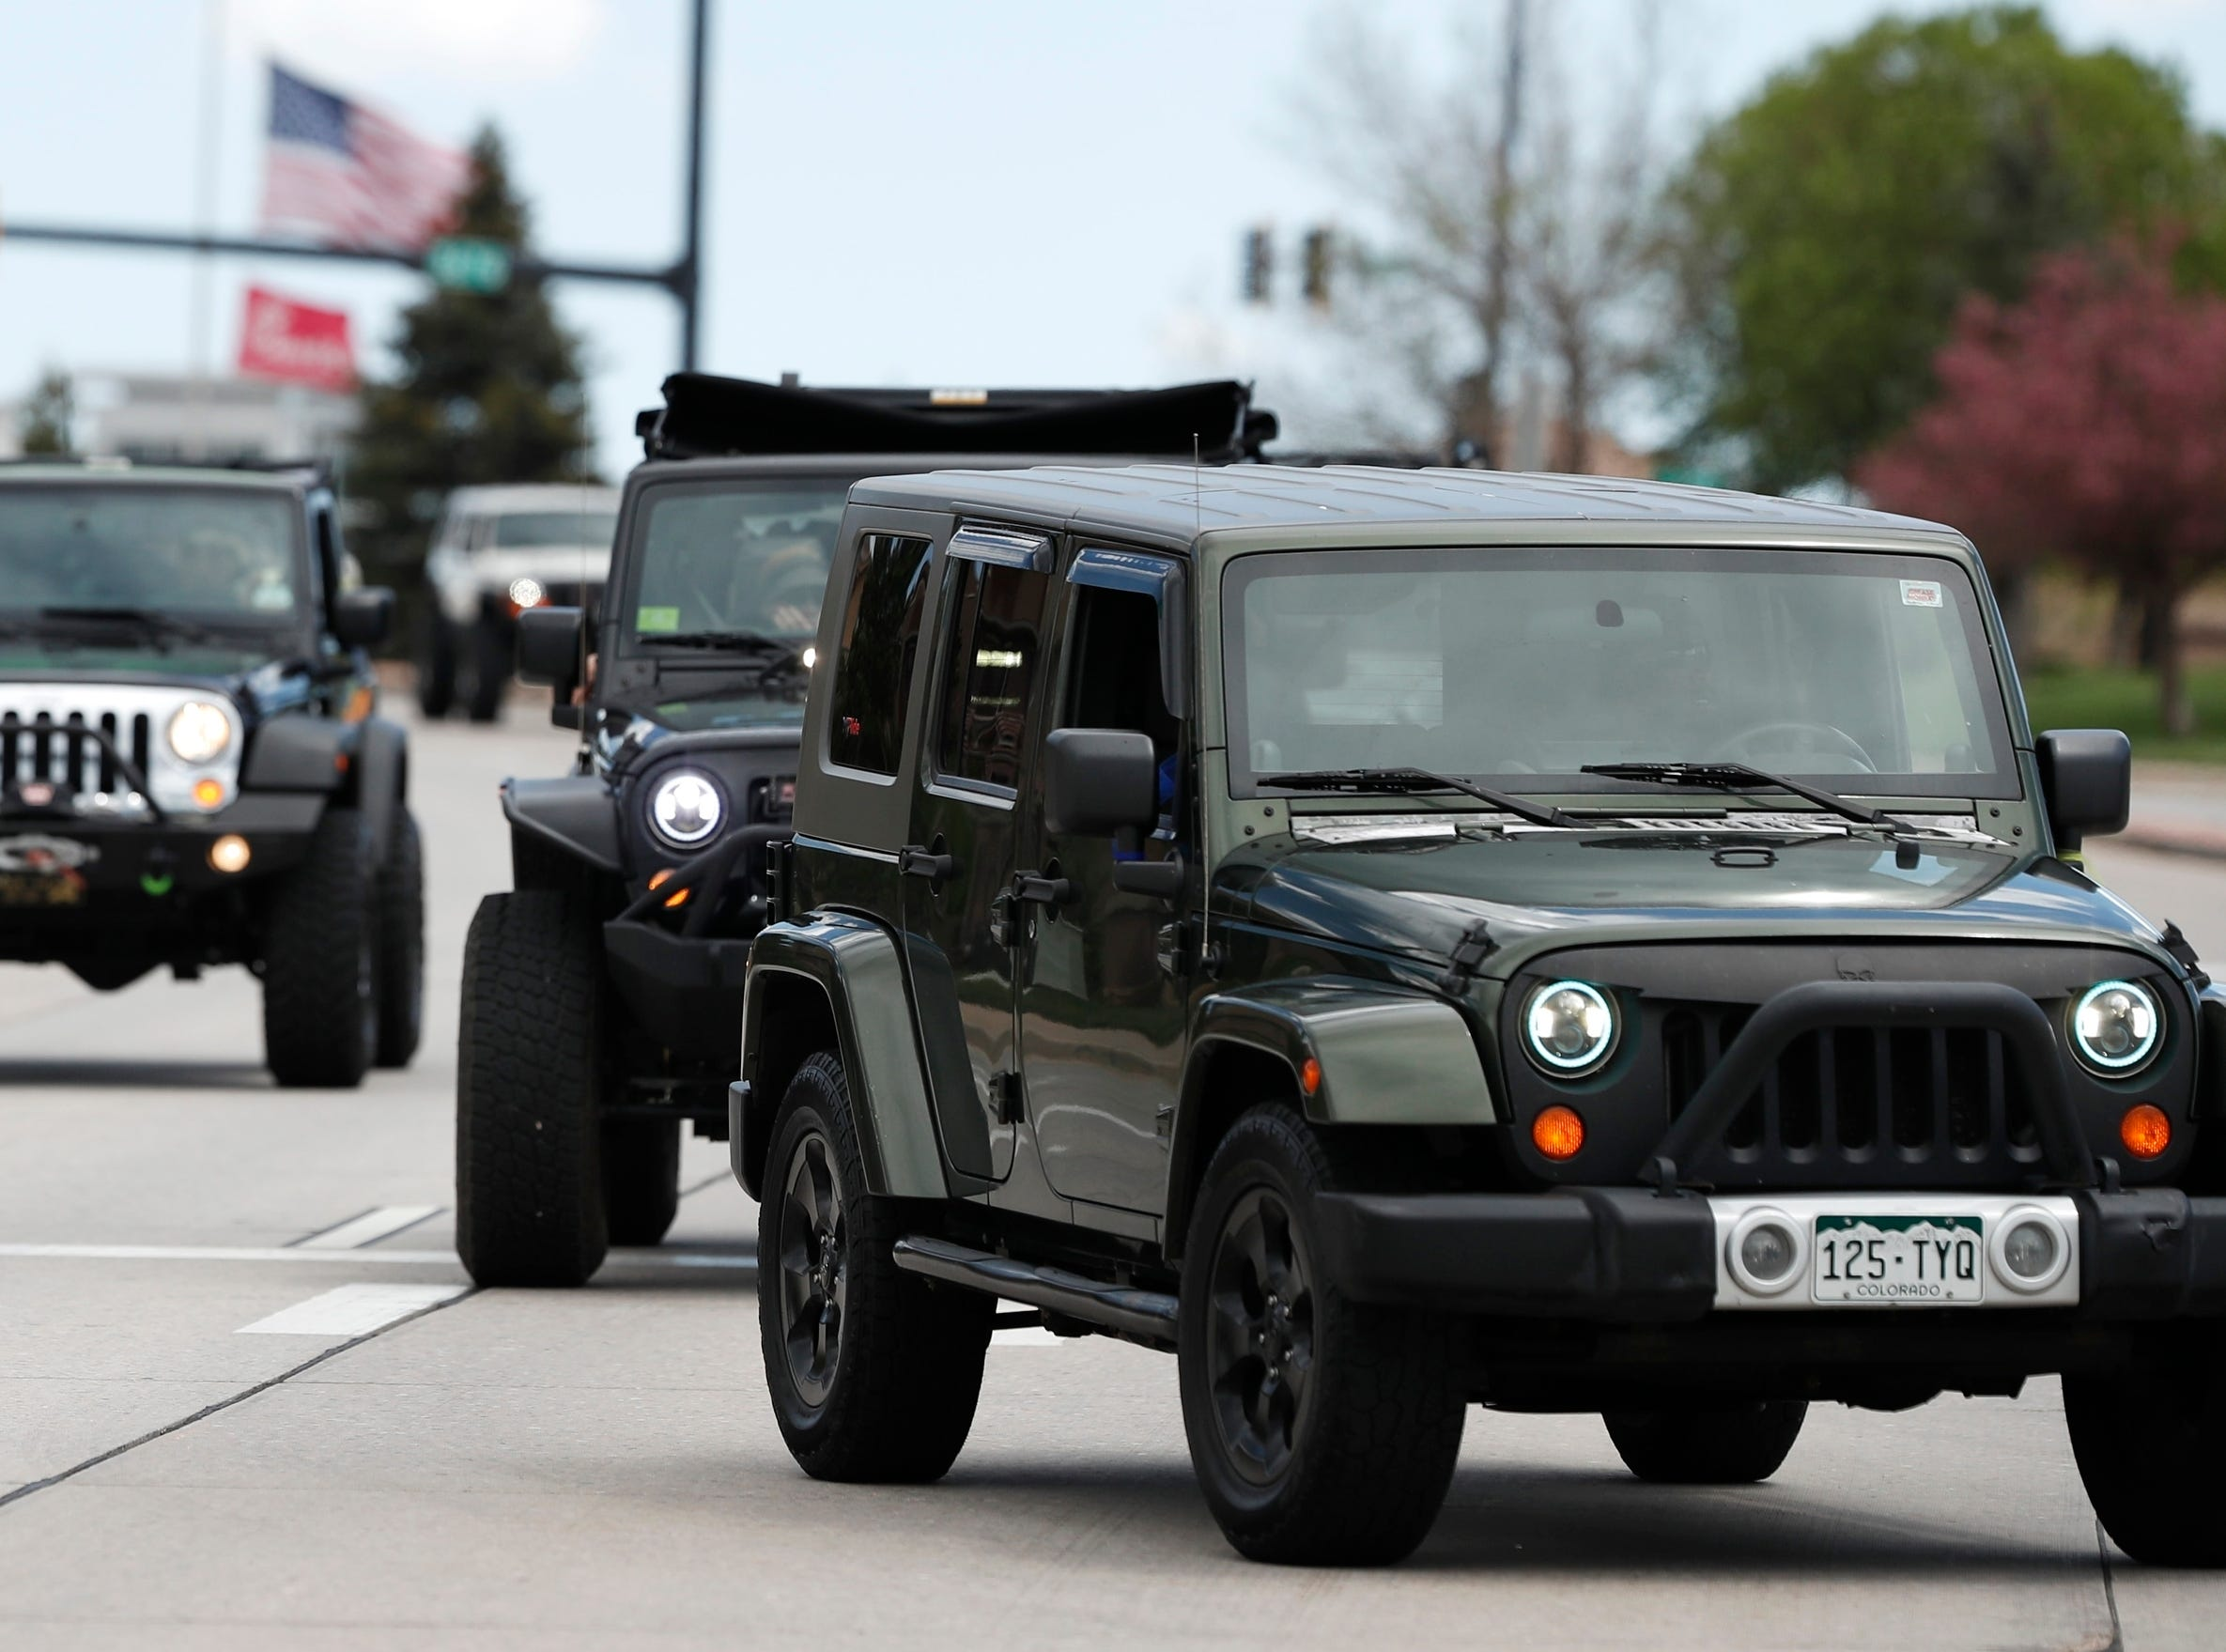 More than 600 Jeeps arrive for a memorial service for Kendrick Castillo Wednesday, May 15, 2019, in Highlands Ranch, Colo. Castillo loved his Jeep and off-roading so other Jeep enthusiasts answered the call to help show their appreciation for his heroism. Castillo was killed while trying to stop an alleged gunman at his Colorado school.